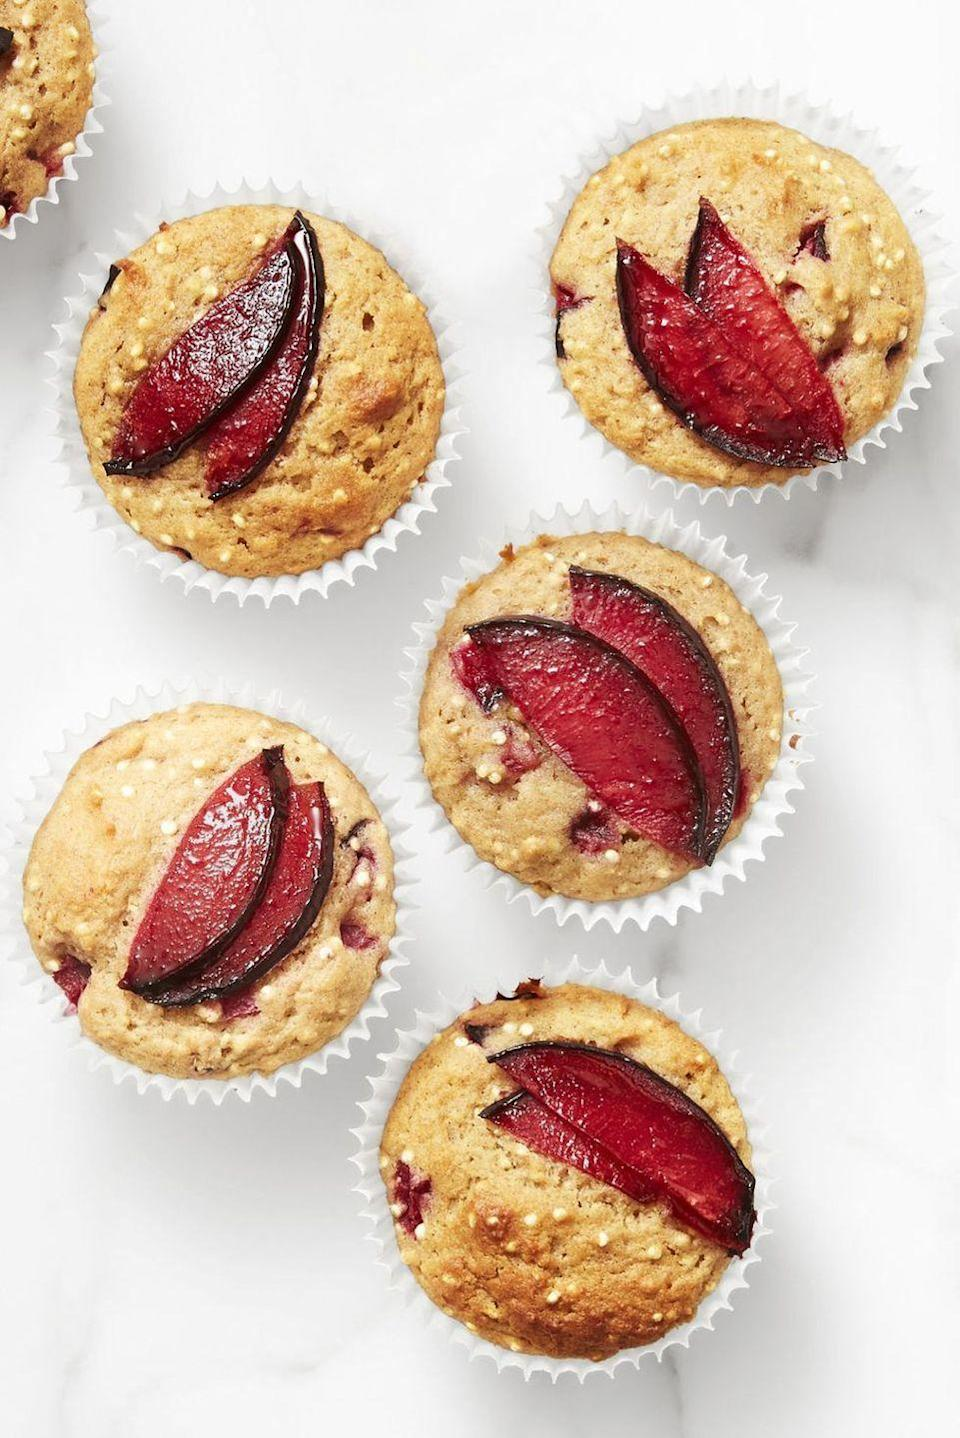 """<p>Start your New Year's off right with these whole grain-packed muffins. You can actually add any fruit you'd like to these muffins, but we think that sliced plum is pretty seasonally appropriate.</p><p><em><a href=""""https://www.goodhousekeeping.com/food-recipes/a44752/spiced-plum-quinoa-muffins-recipe/"""" rel=""""nofollow noopener"""" target=""""_blank"""" data-ylk=""""slk:Get the recipe for Spiced Plum and Quinoa Muffins »"""" class=""""link rapid-noclick-resp"""">Get the recipe for Spiced Plum and Quinoa Muffins »</a></em> </p>"""